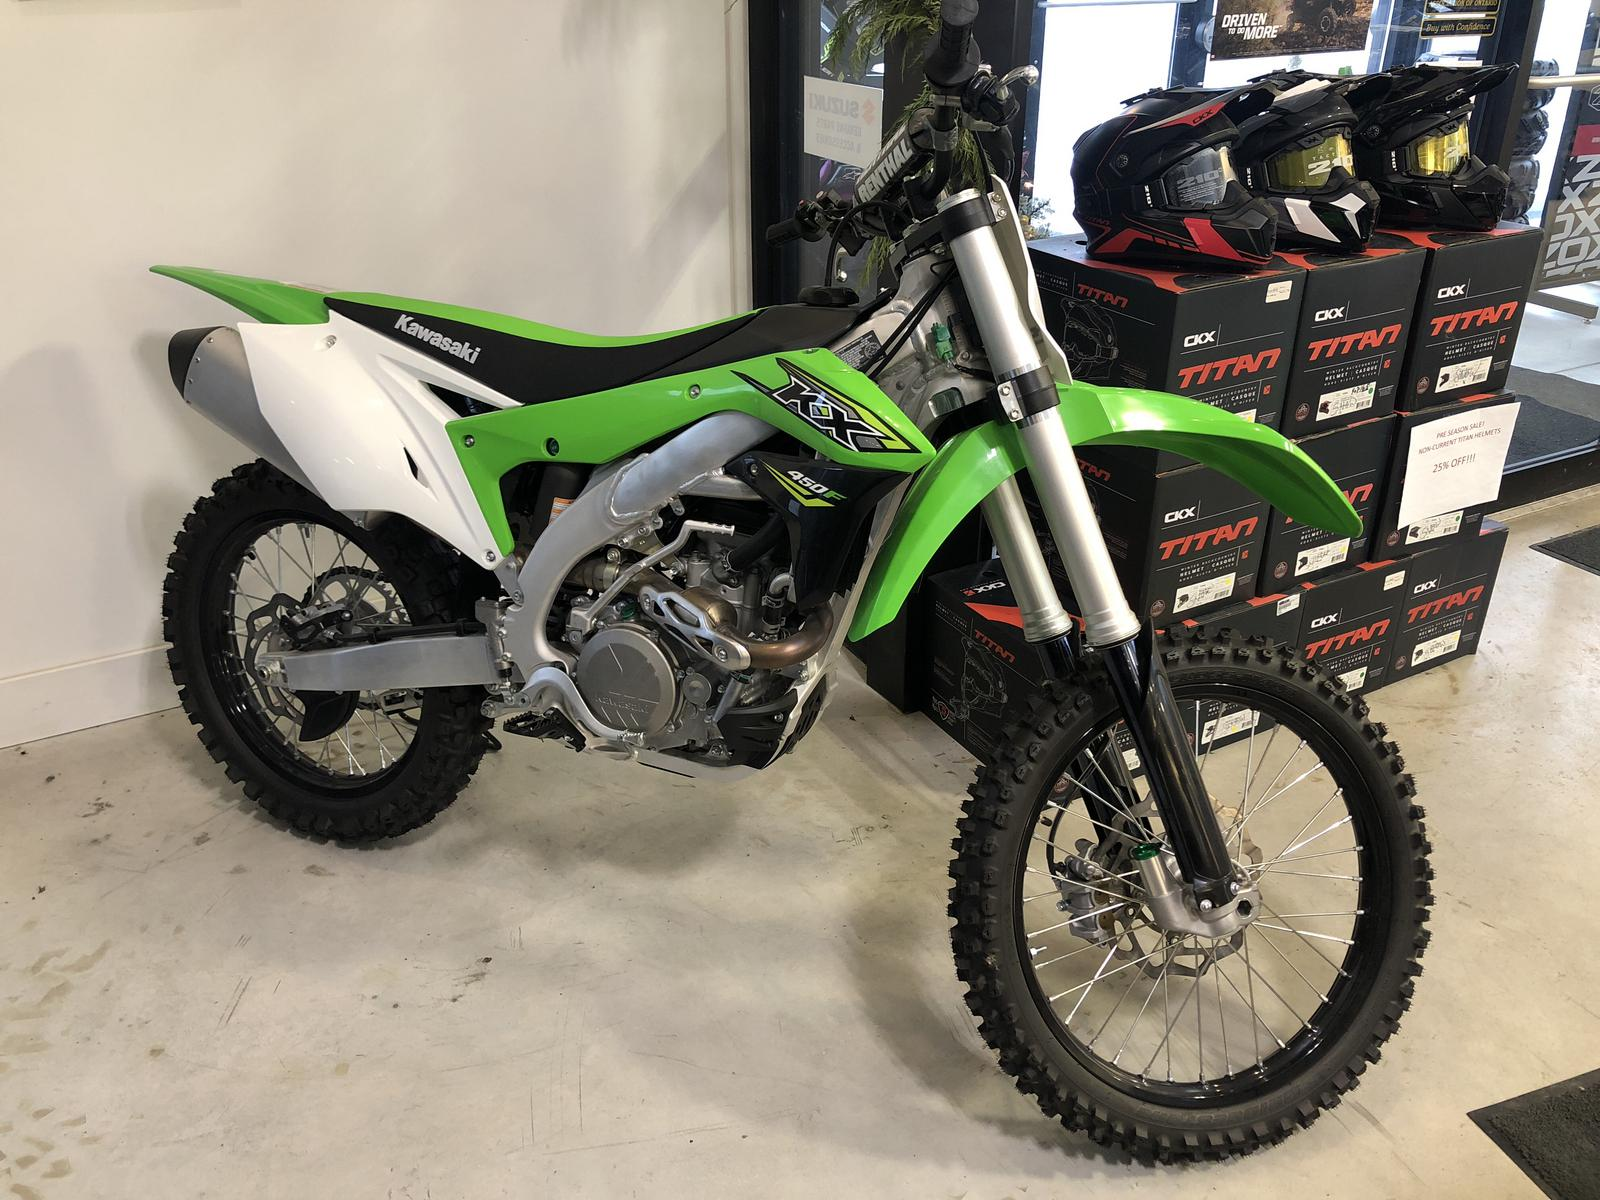 Inventory from Kawasaki A T C  Corral Stouffville, ON (905) 640-2212